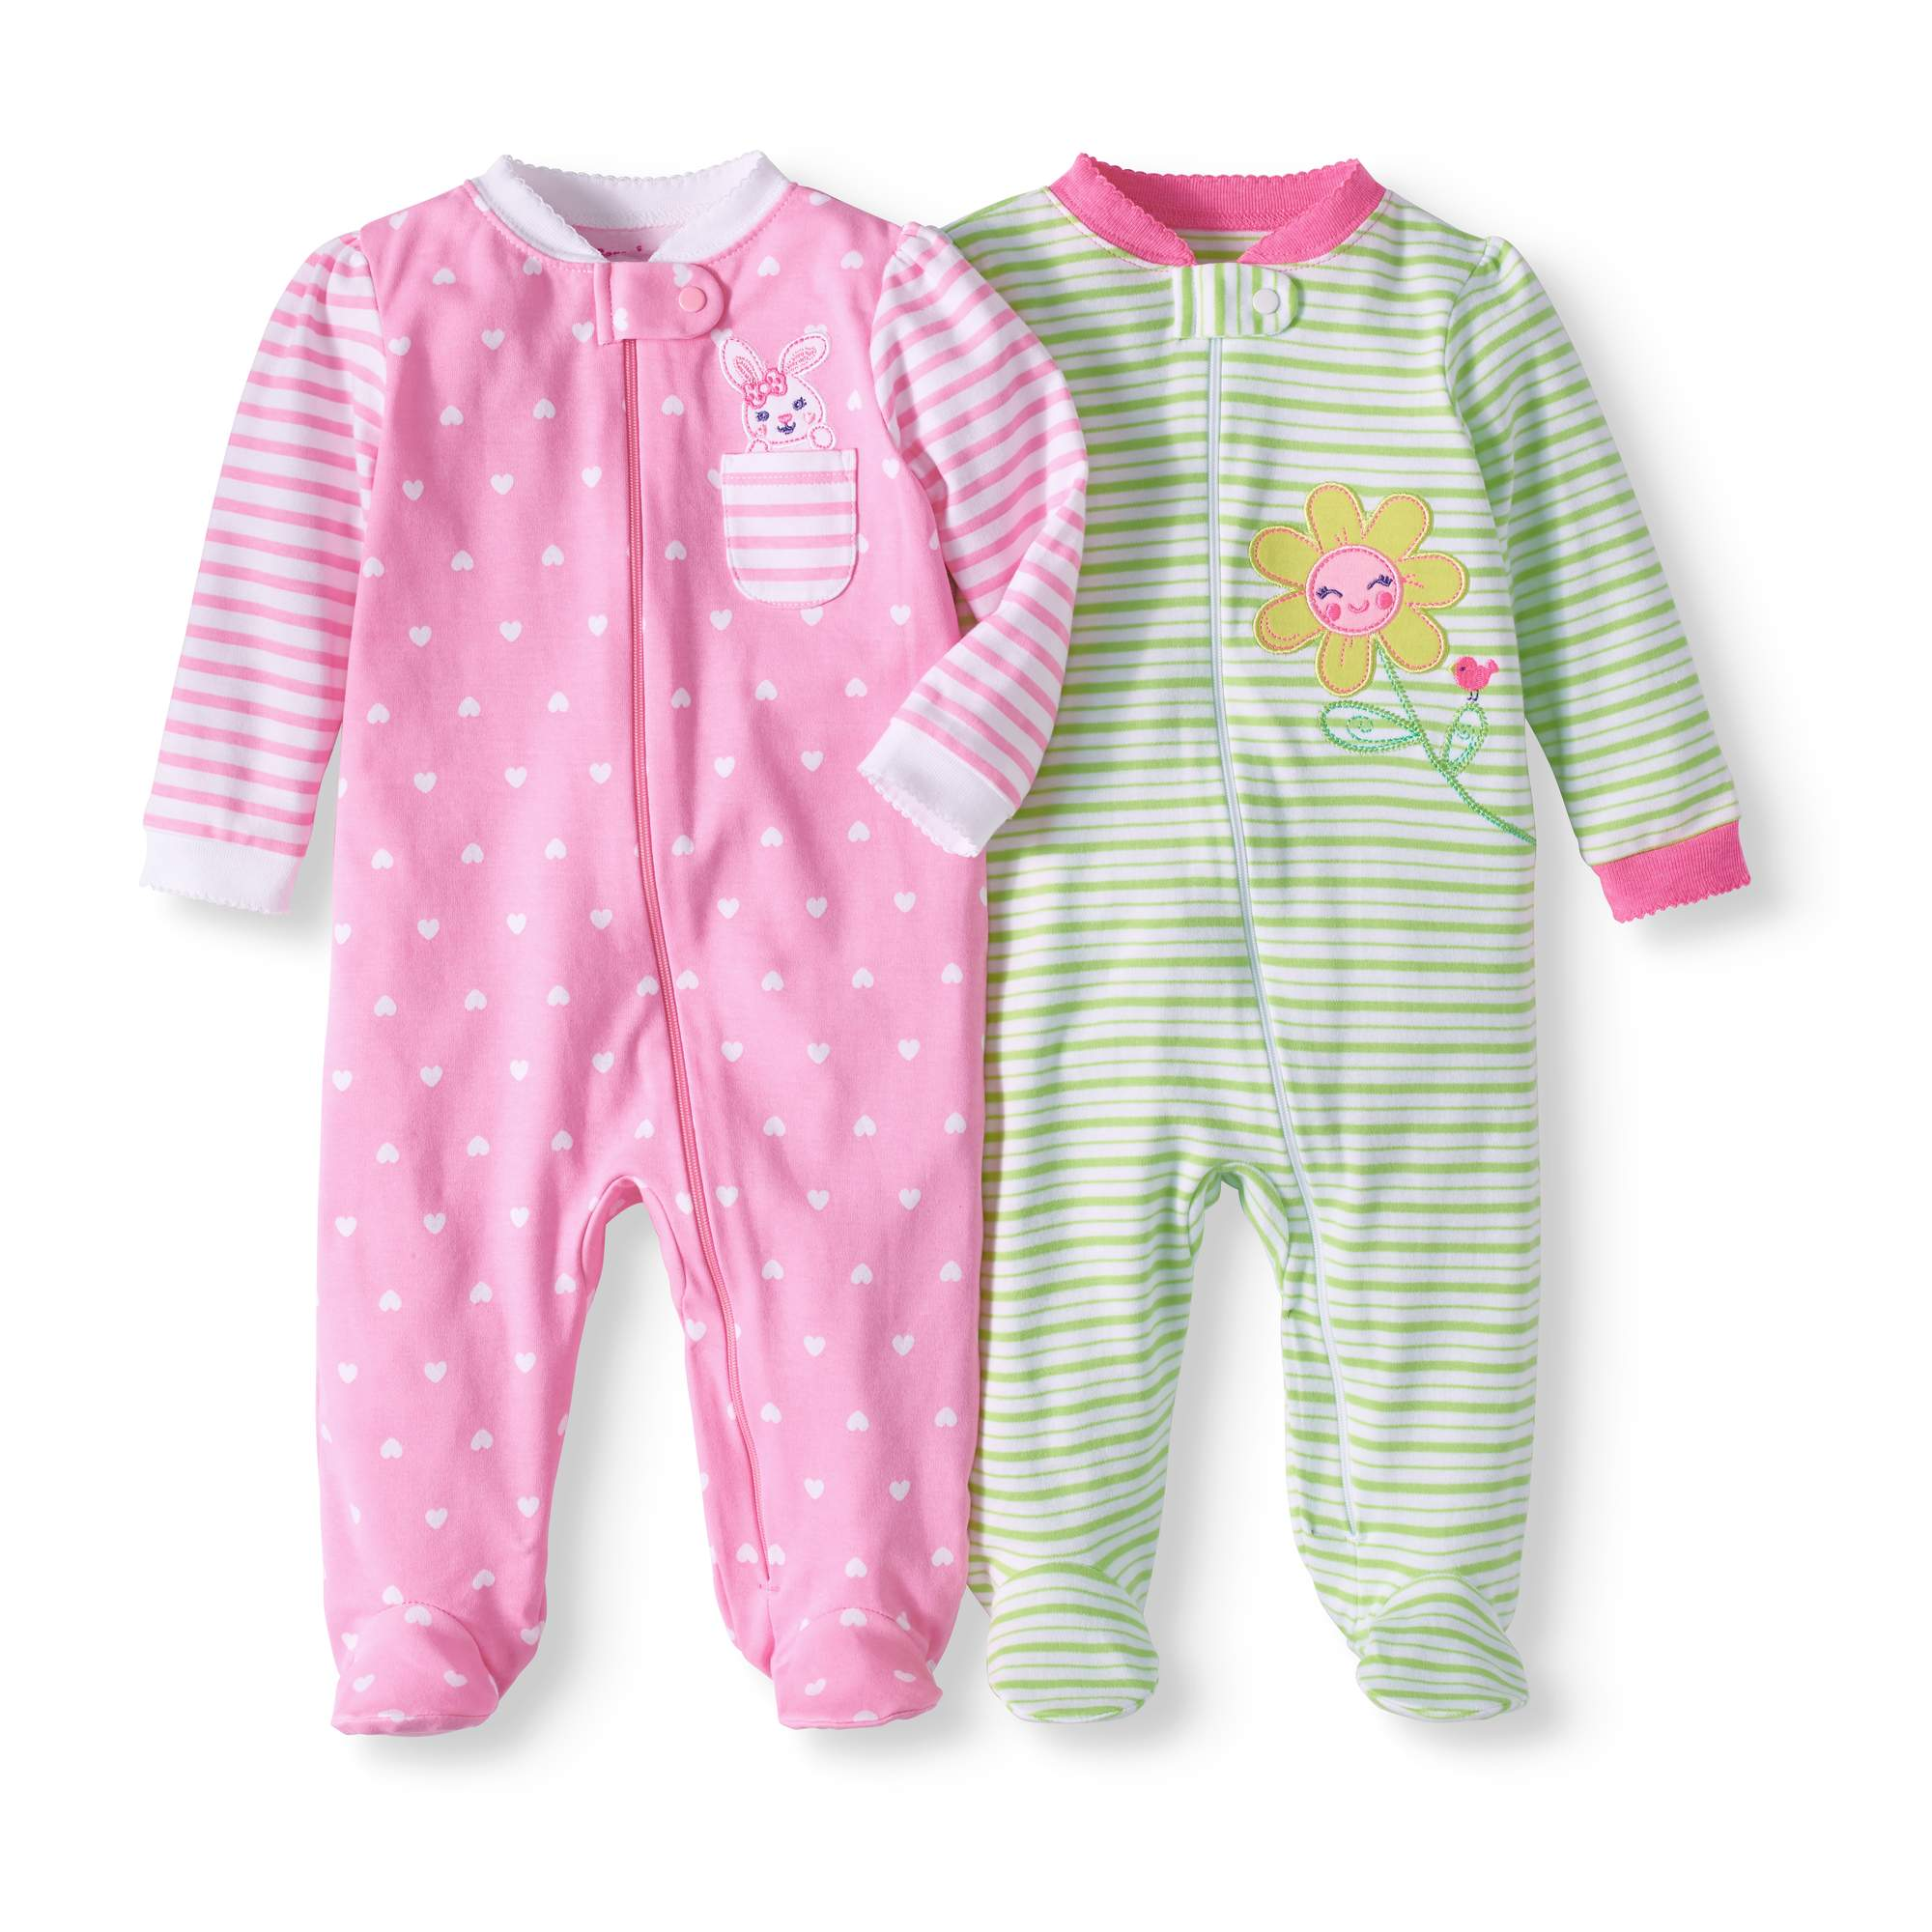 Newborn Baby Girl Sleep 'N Play, 2-pack